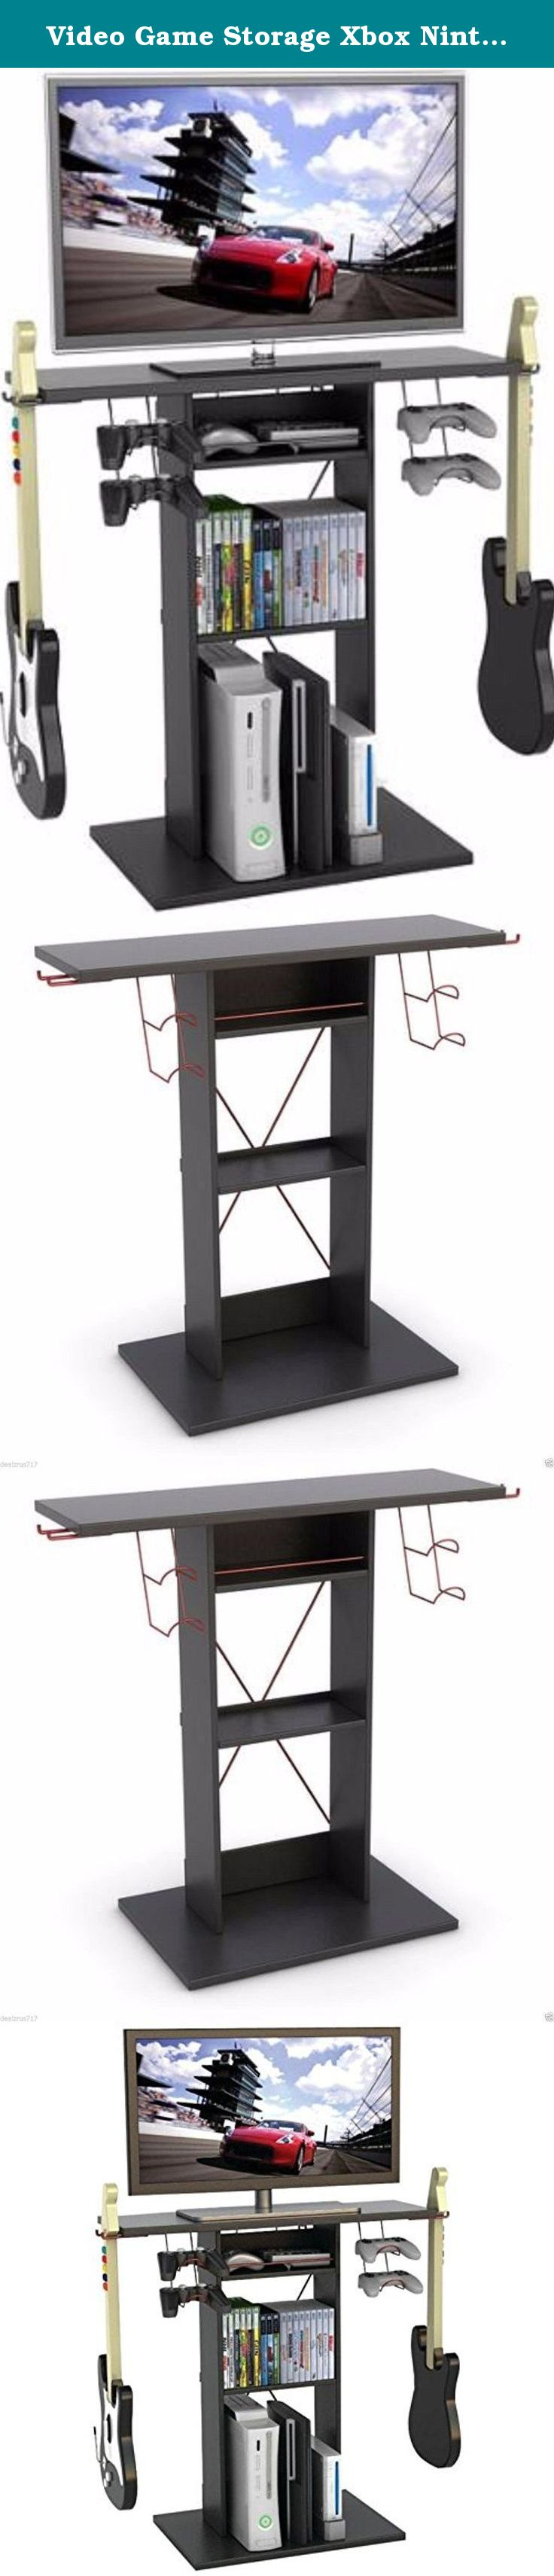 Video Game Storage Xbox Nintendo Ds Central Tv Stands For Flat